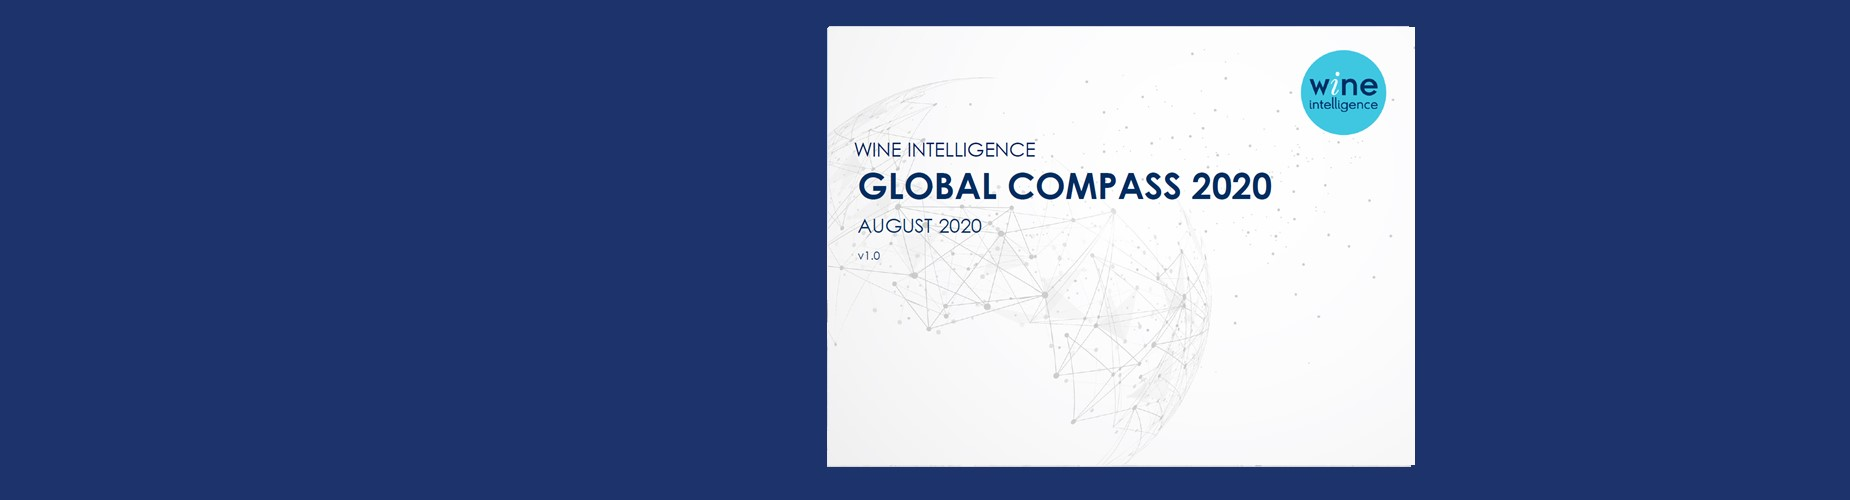 global compass 2020 - About reports shop